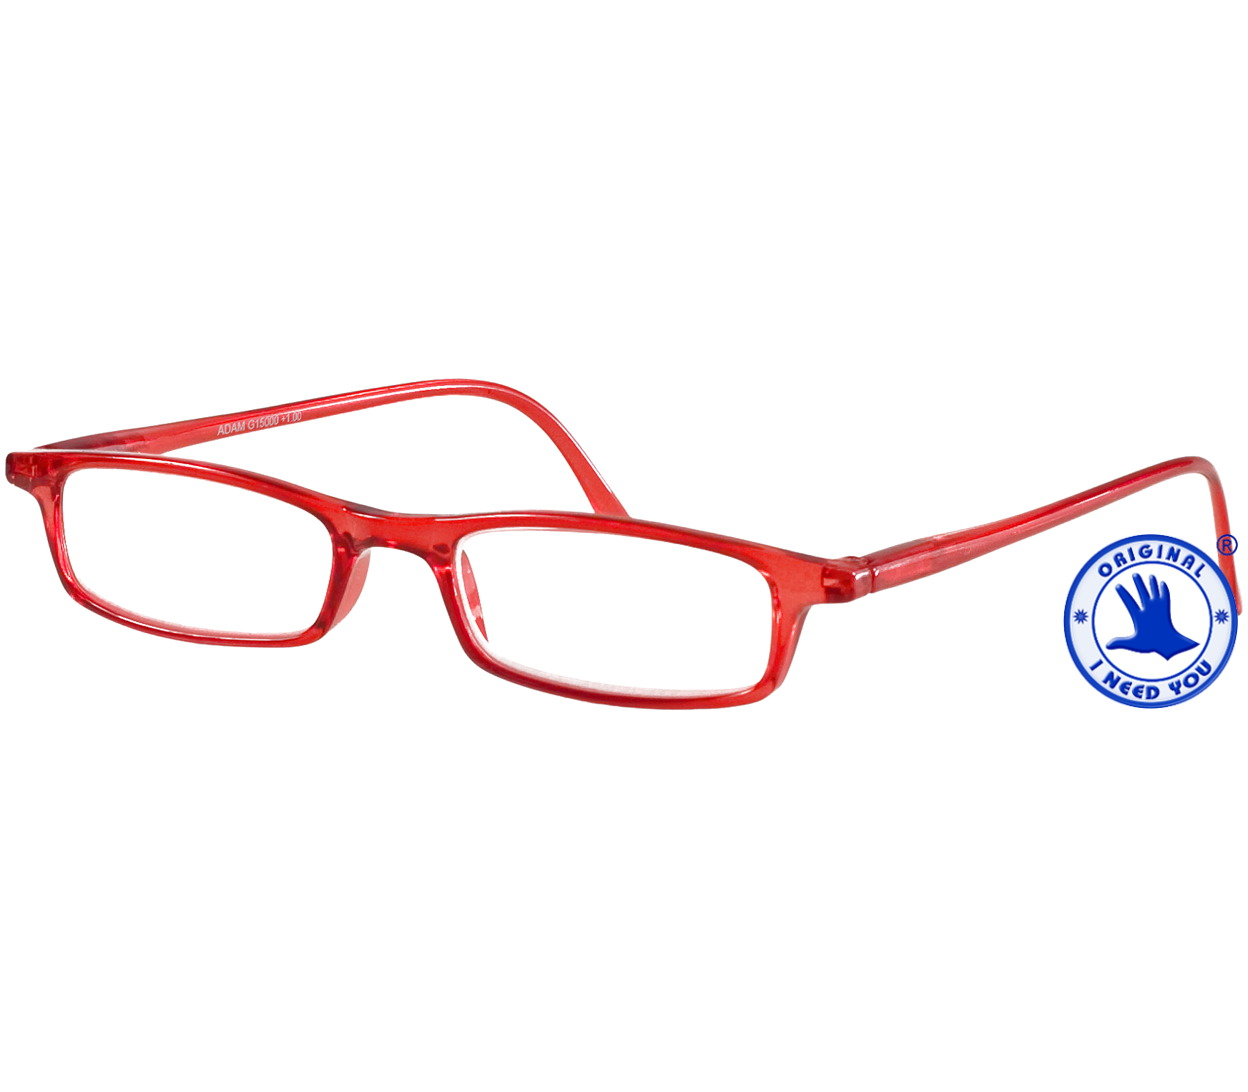 Main Image (Angle) - Adam (Red) Classic Reading Glasses